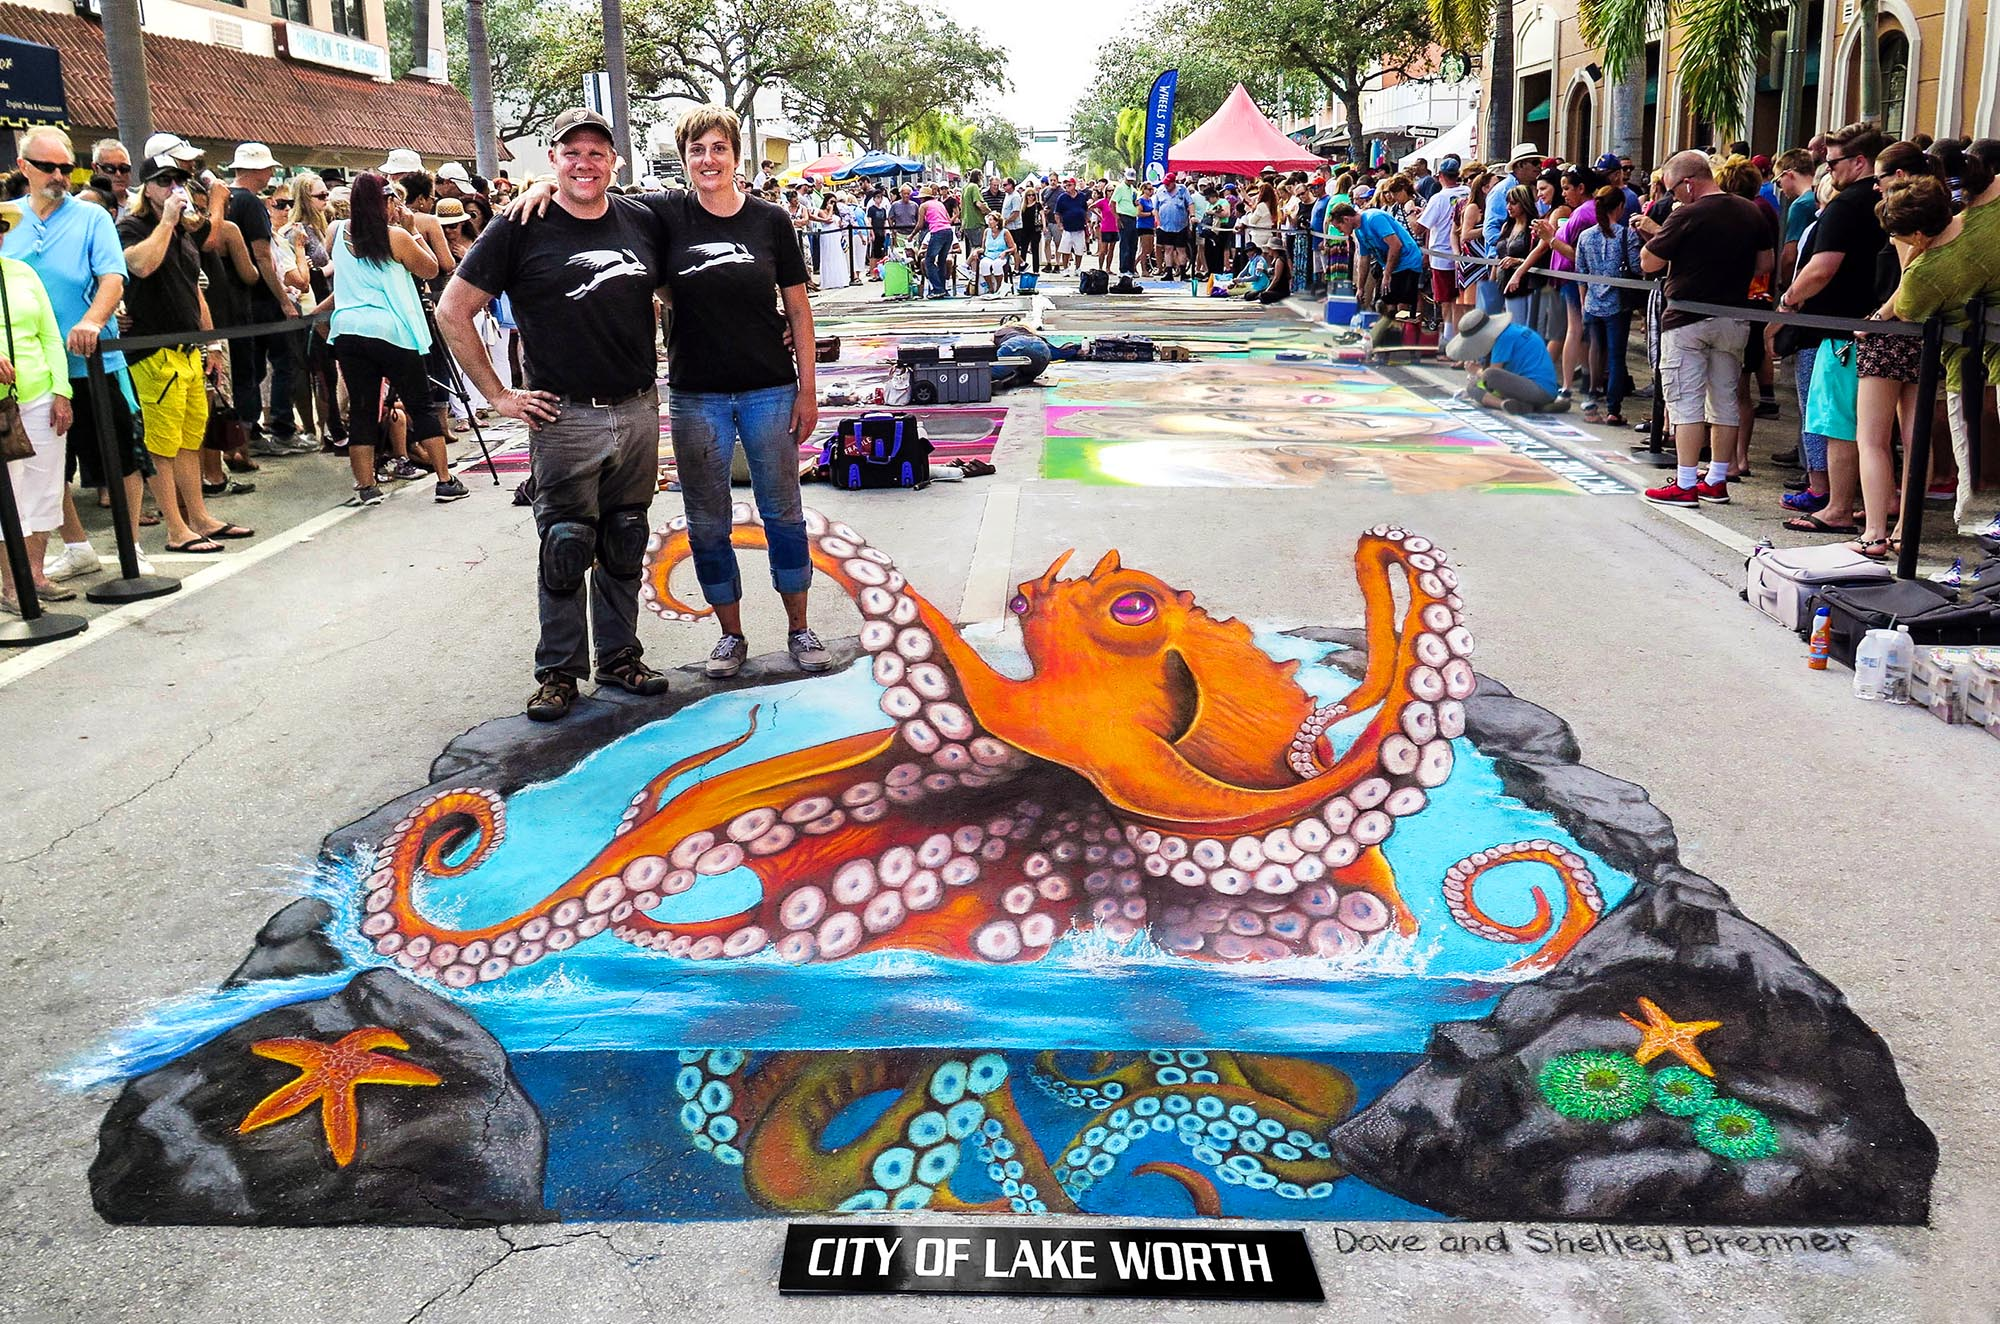 Dave and shelley brenner at the lake worth street painting festival